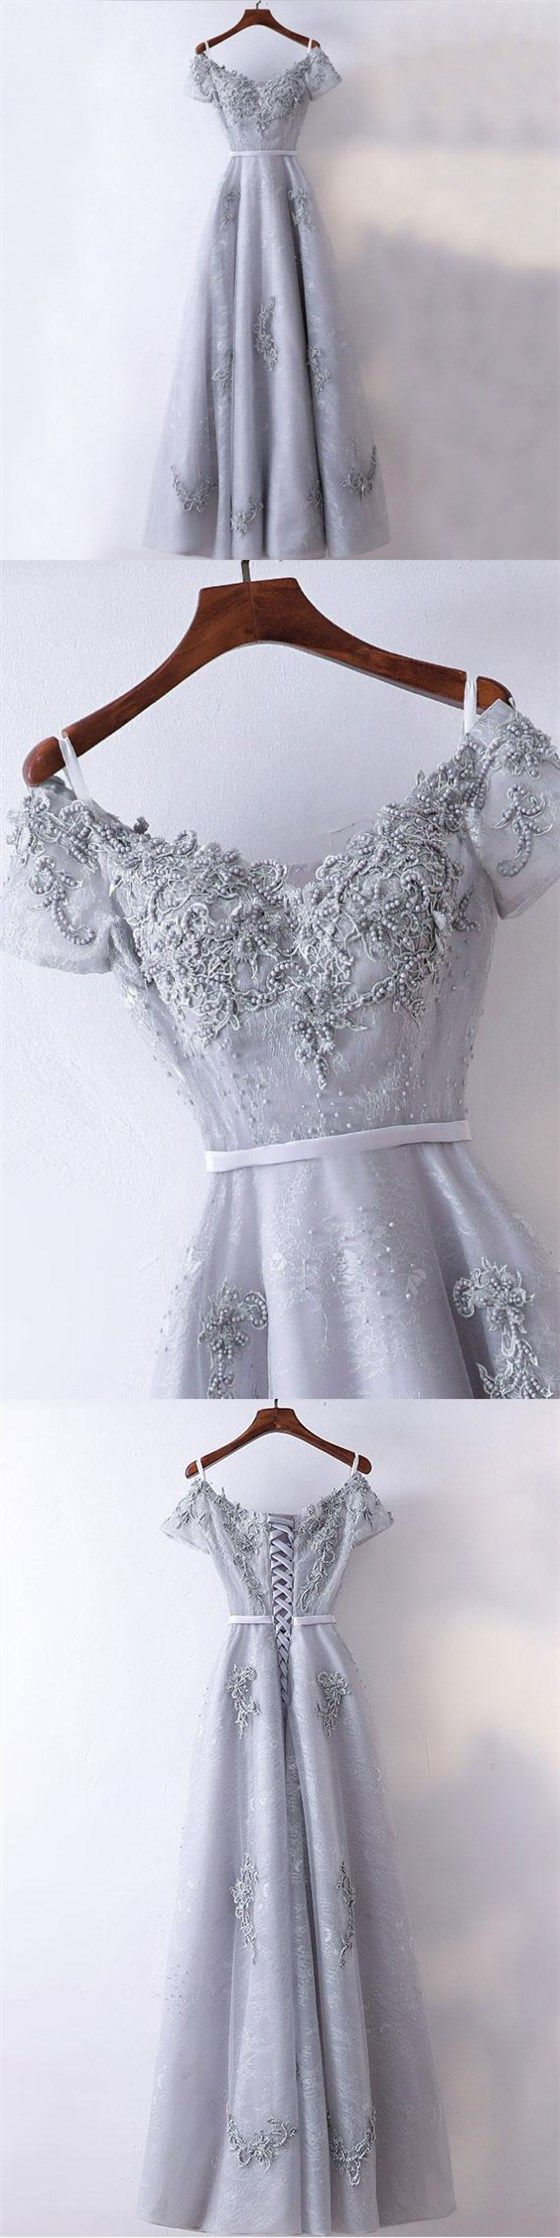 New Arrival Formal High Quality Prom Dresses, A-line Grey Short Sleeves Bridesmaid Dresses, PD0458